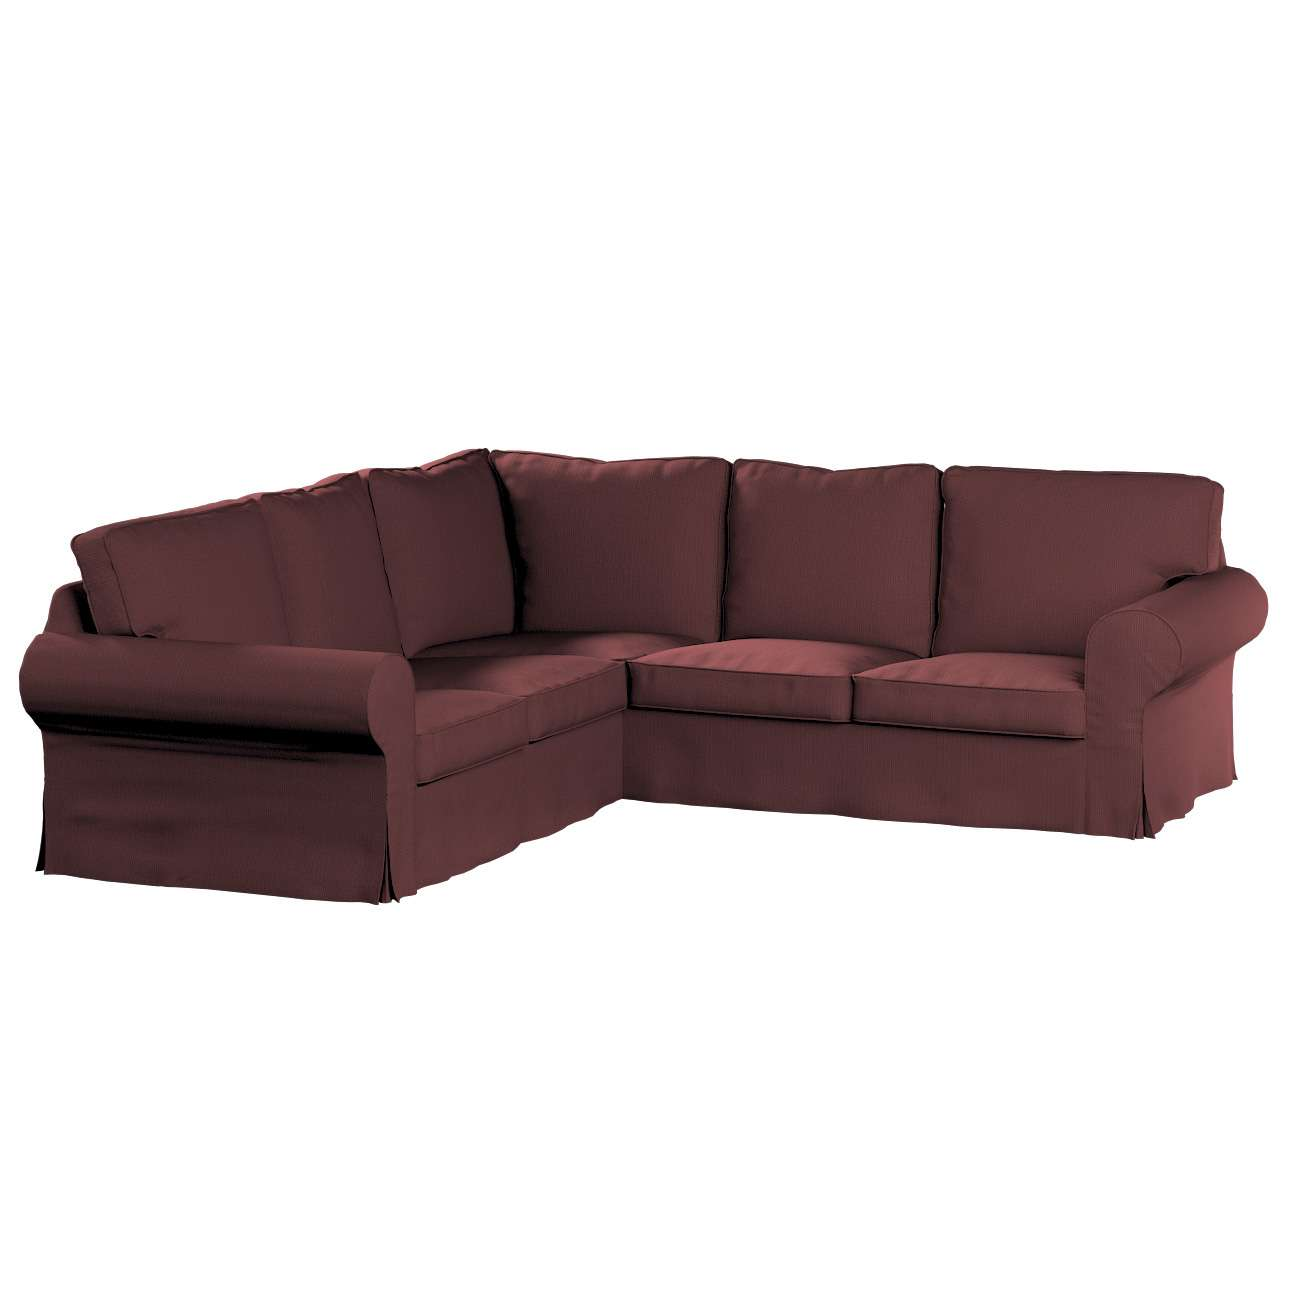 Ektorp kampinė sofa Ektorp kampinė sofa kolekcijoje Manchester , audinys: 103-56